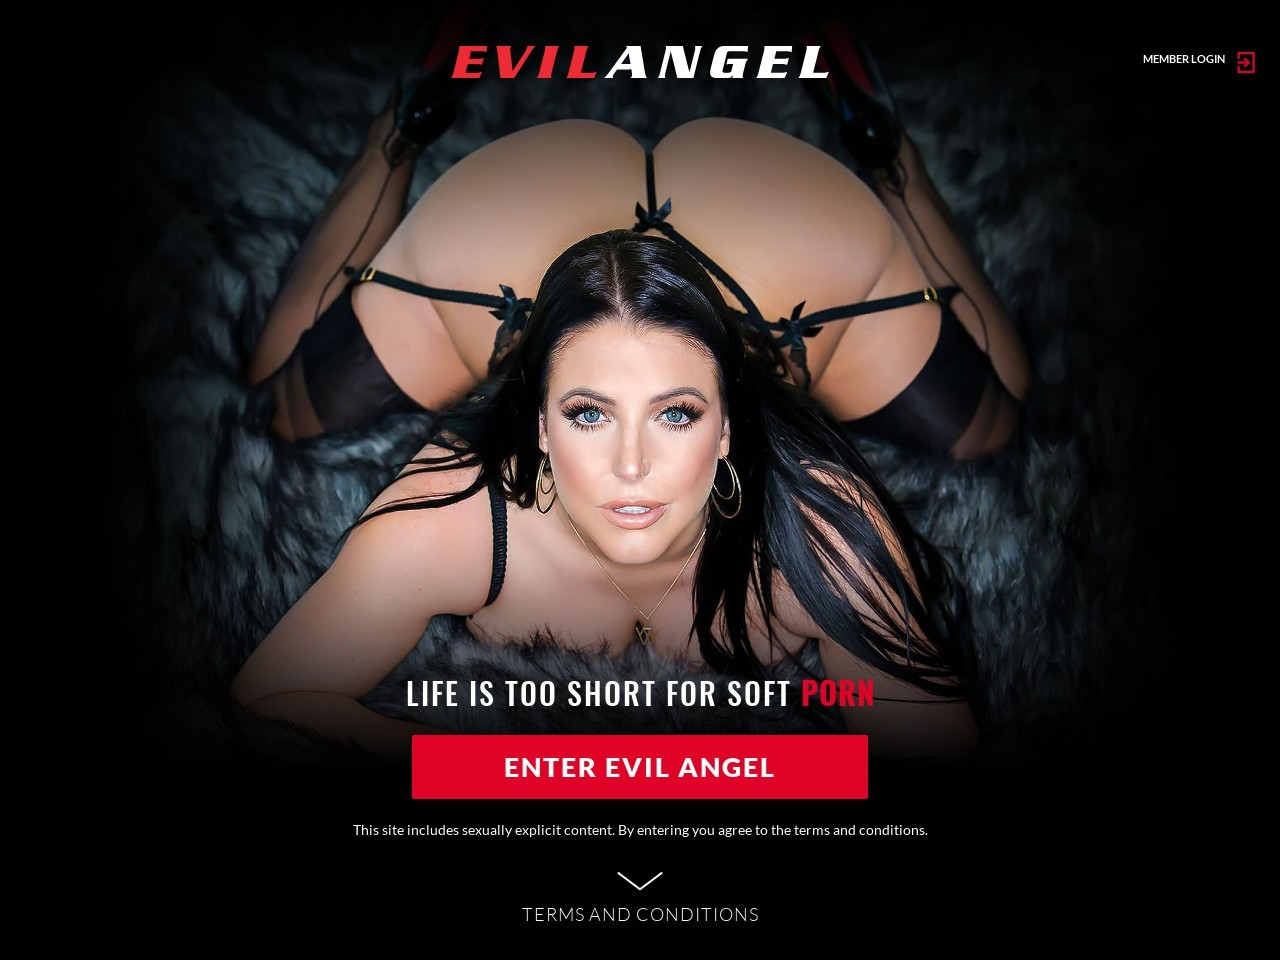 Evil Angel | Official Website of Hardcore Anal & Gonzo Porn